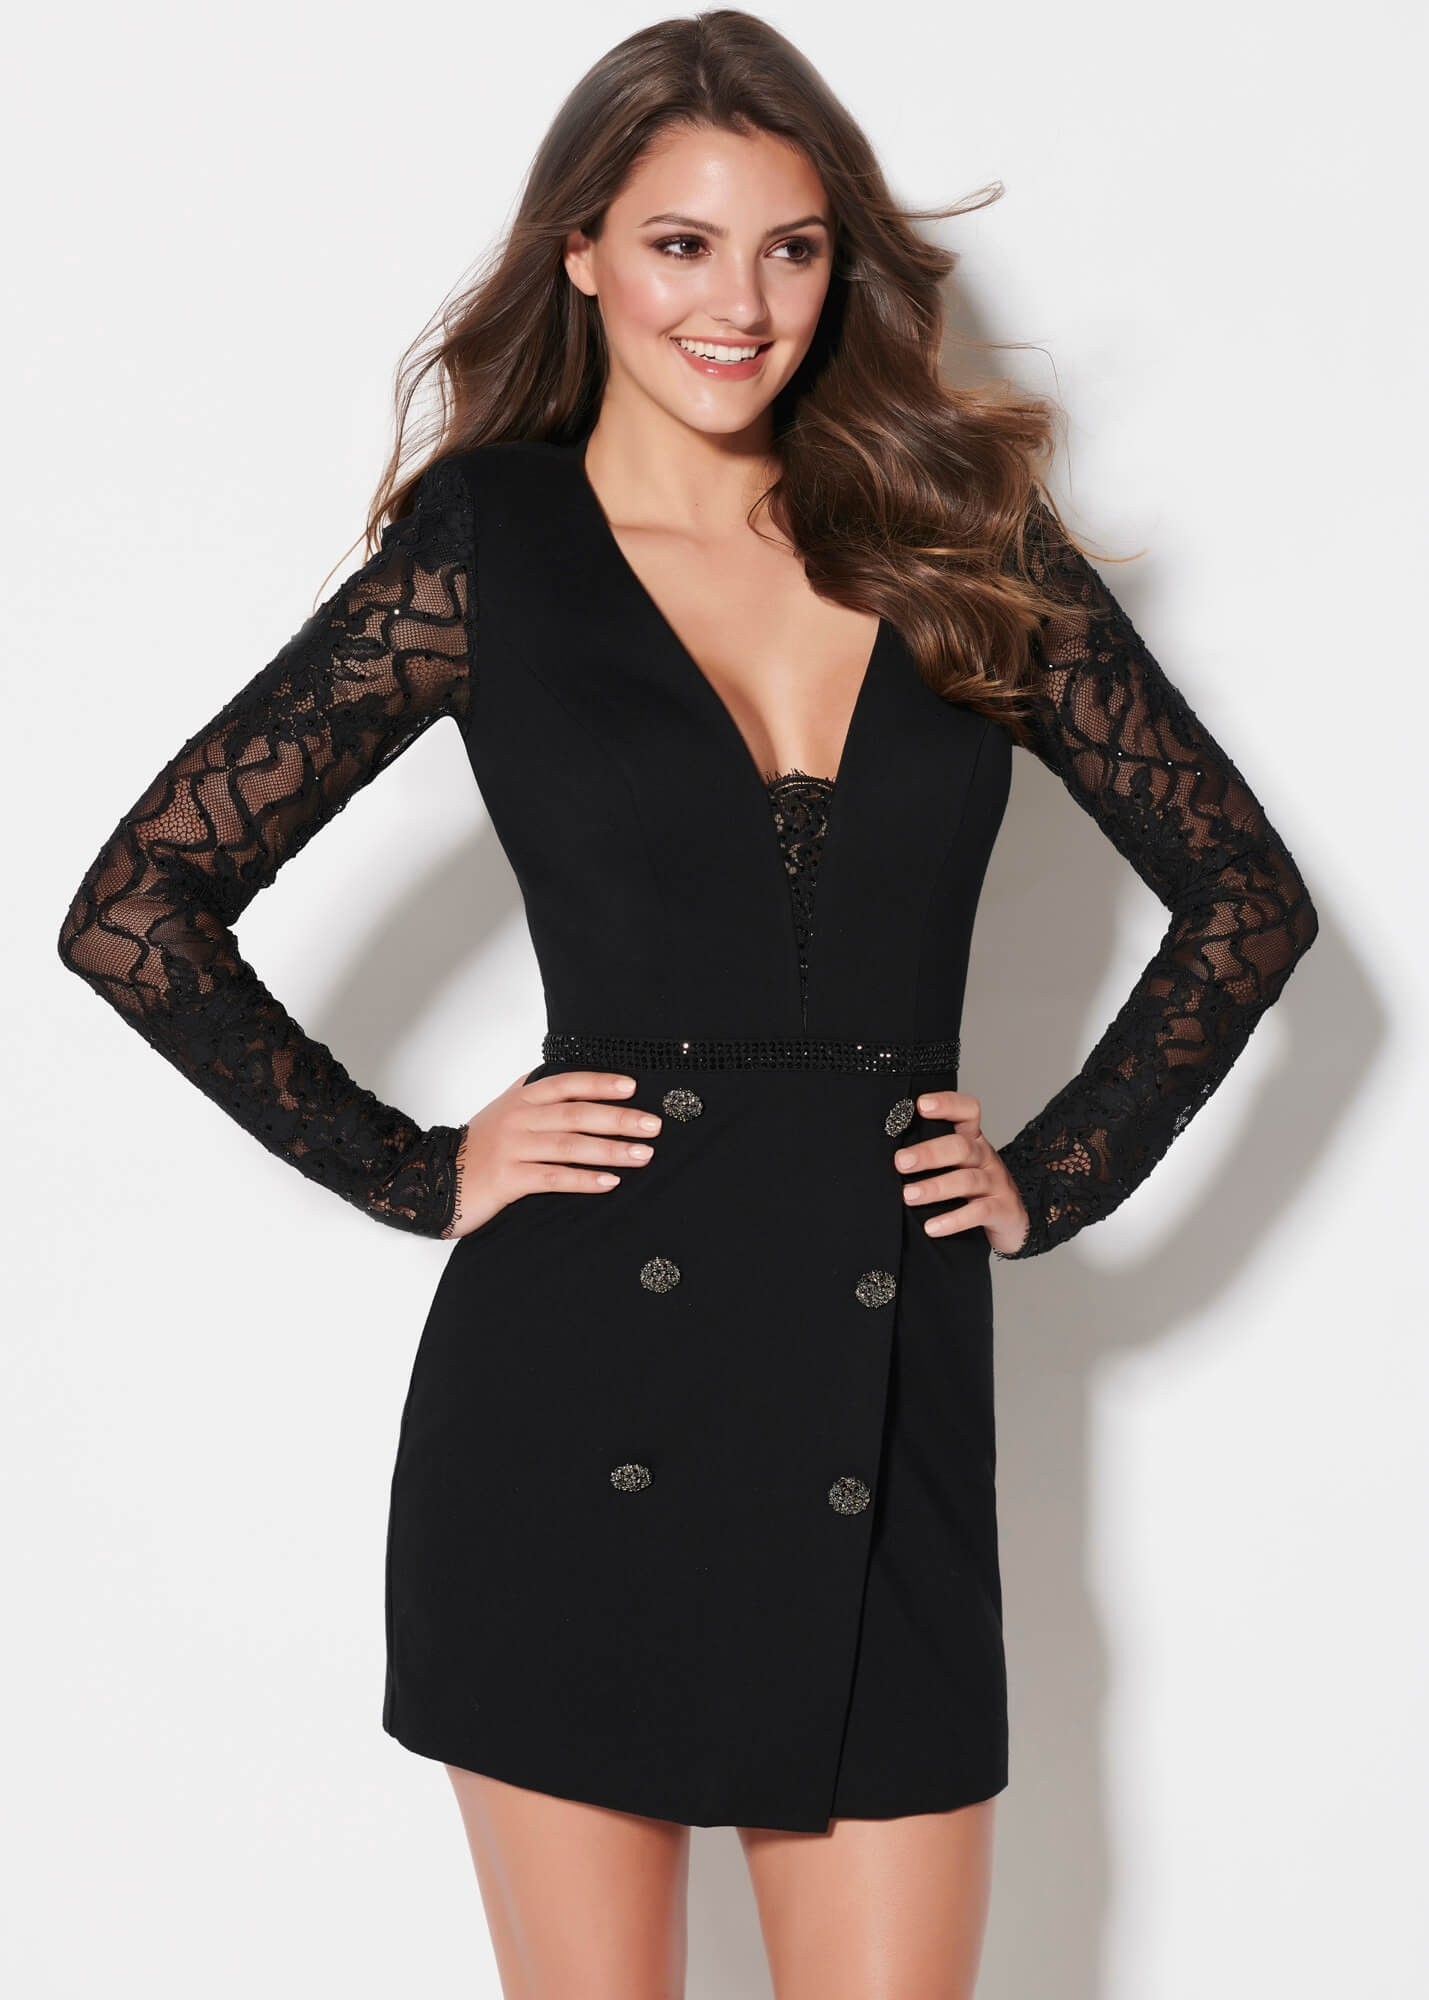 Ellie Wilde EW21926S Tuxedo Style Mini Dress